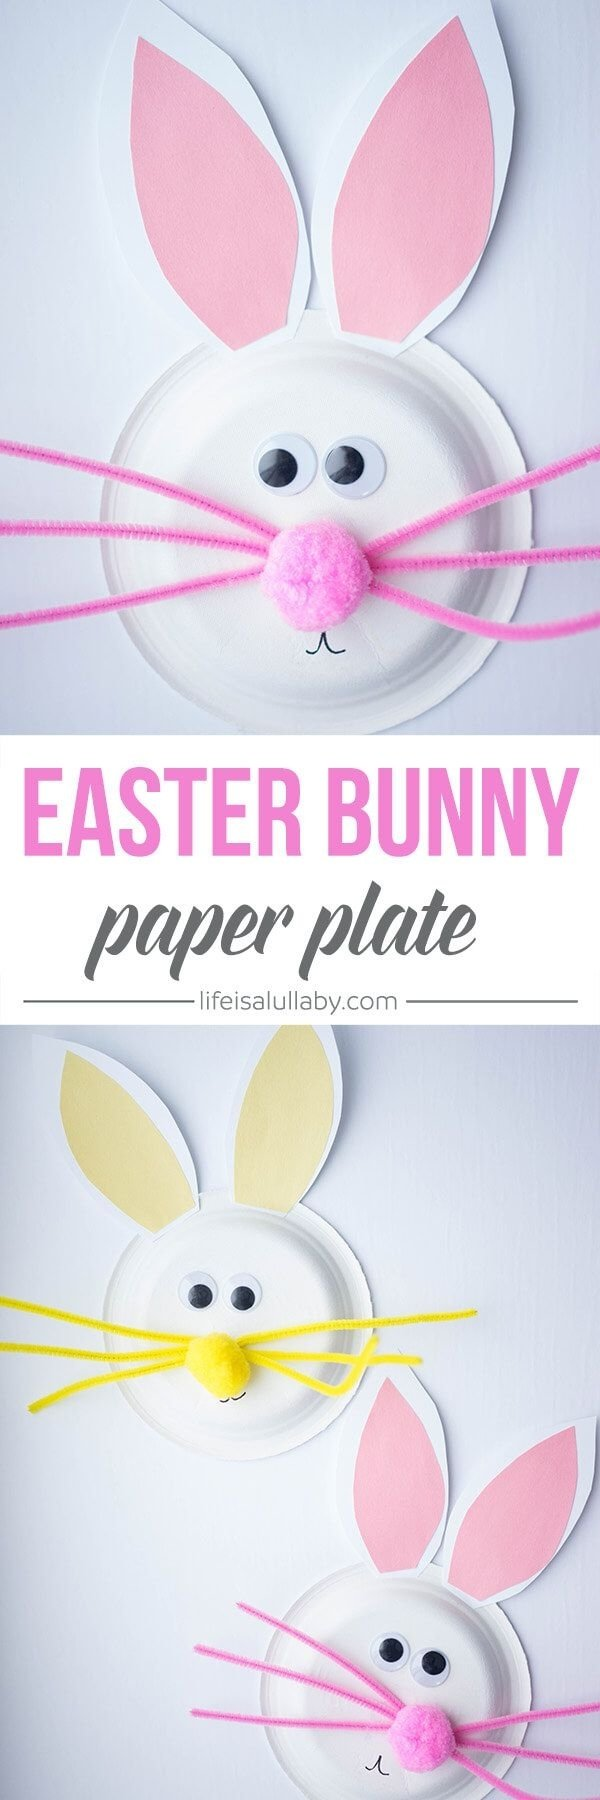 10 Fashionable Easter Arts And Crafts Ideas 459 best easter ideas images on pinterest easter crafts for kids 2021